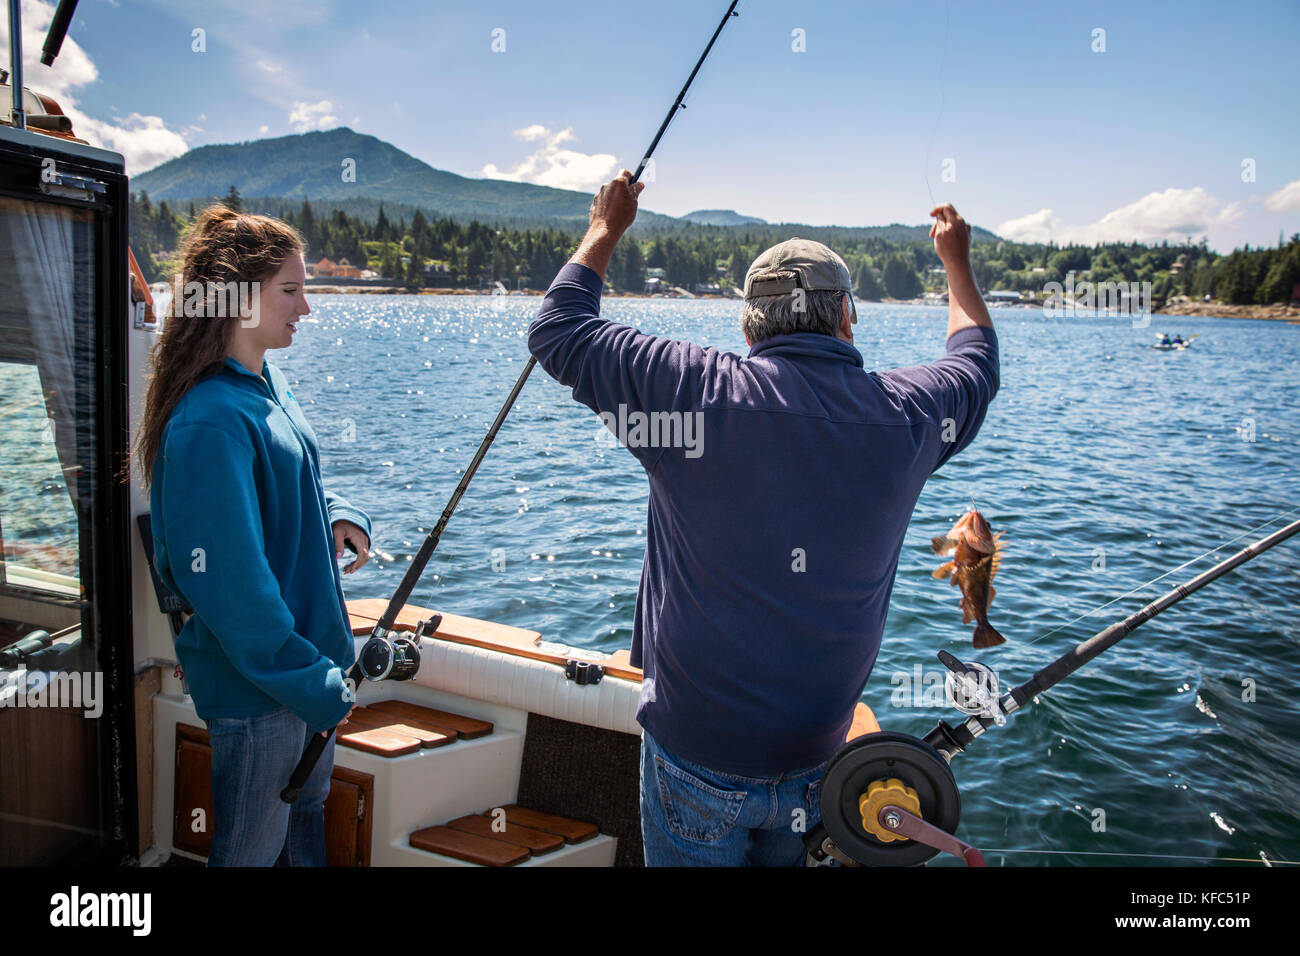 Recreational captain stock photos recreational captain for Captain tonys fishing